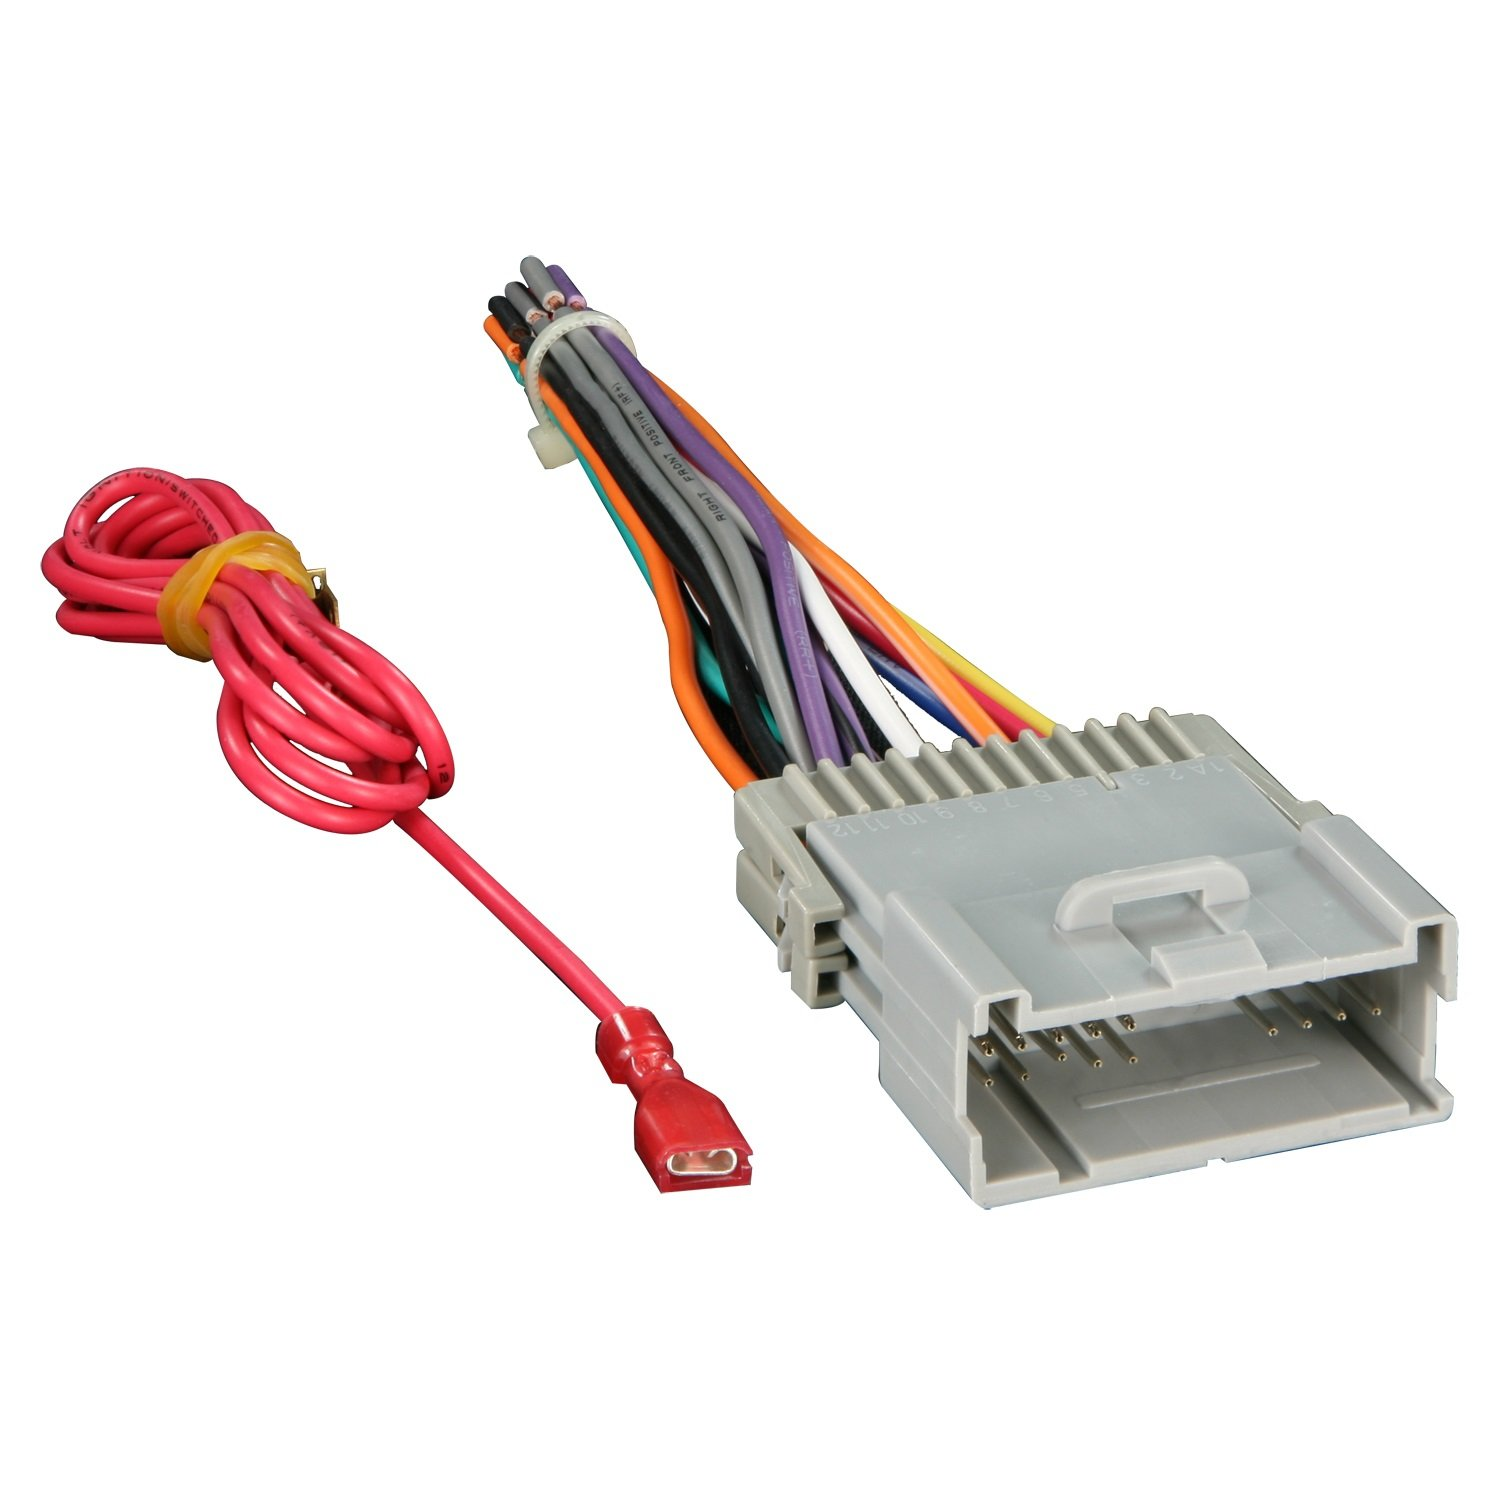 61eewxp9orL._SL1500_ amazon com metra 70 2003 radio wiring harness for gm 98 08 5 Wire Trailer Harness Diagram at couponss.co